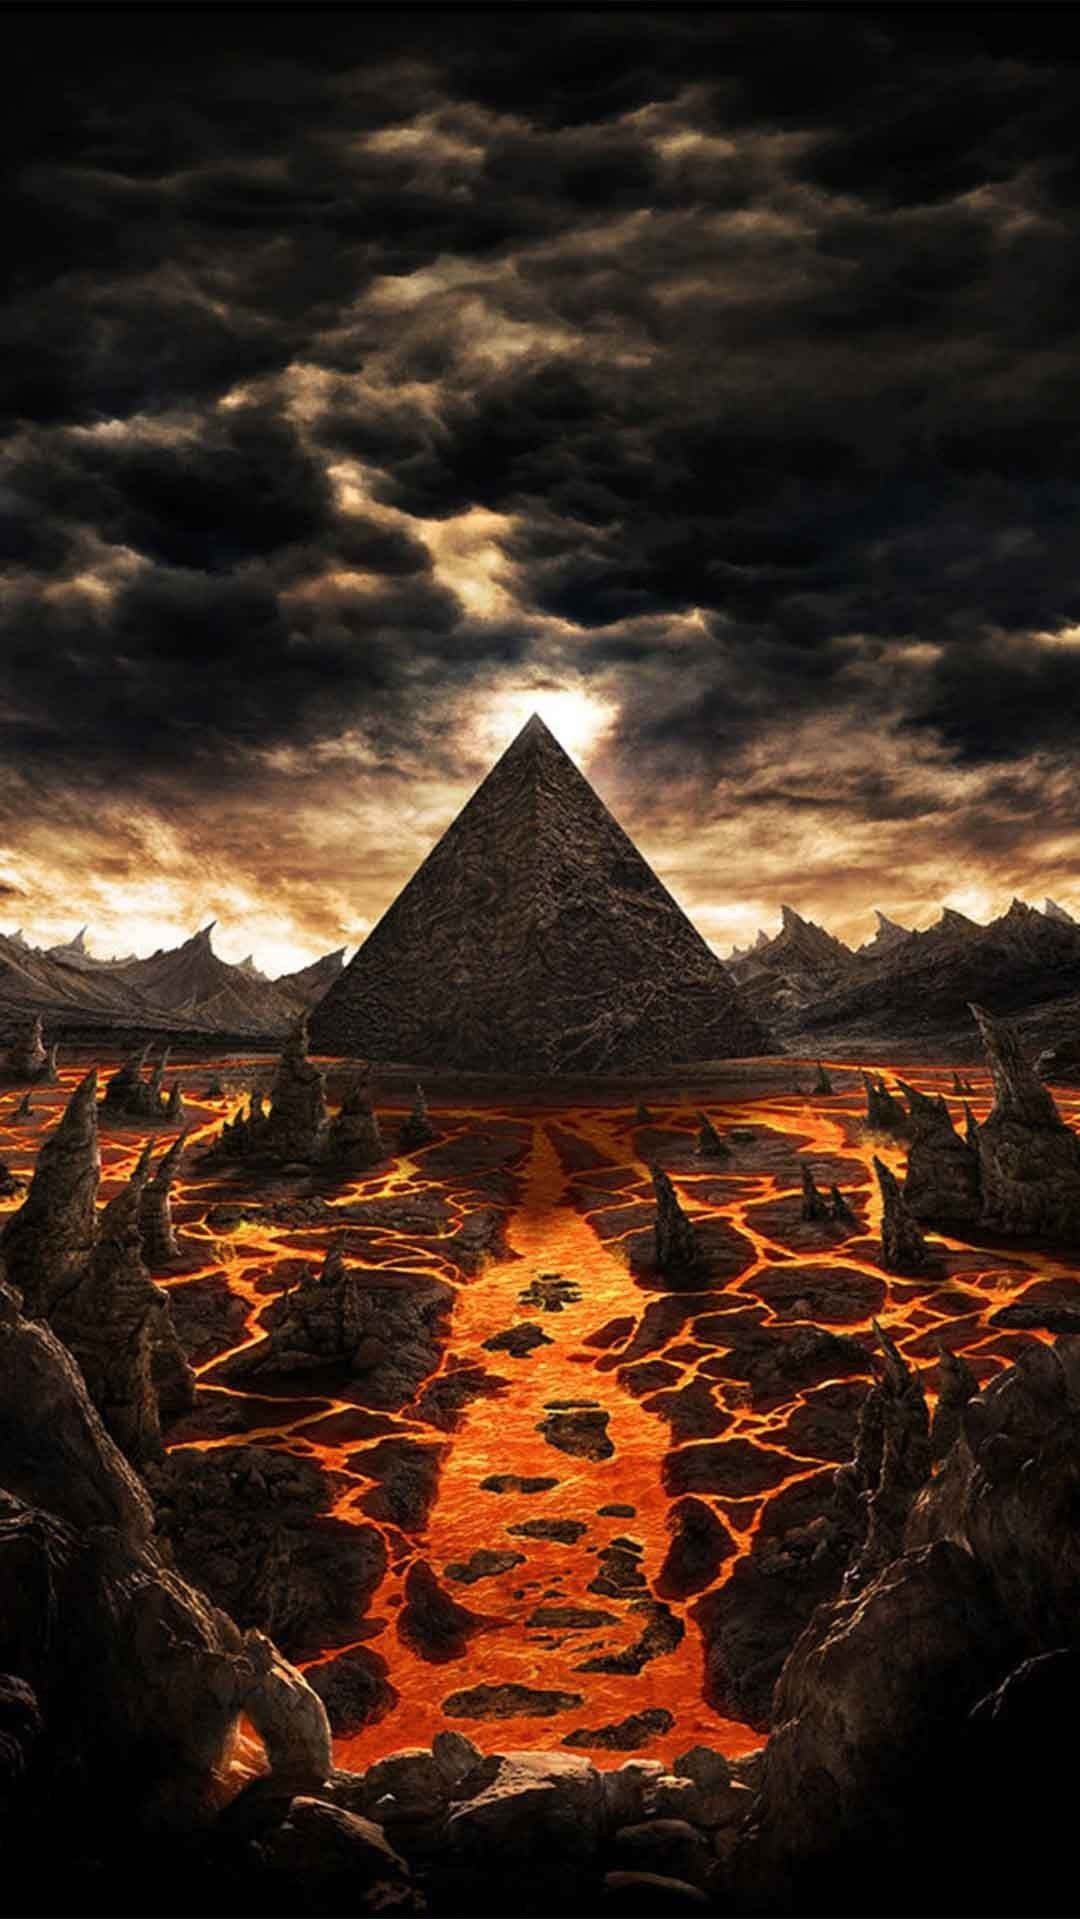 Designs Volcano iPhone 6 Plus Wallpapers – fire, mountai iPhone 6 Plus  Wallpapers